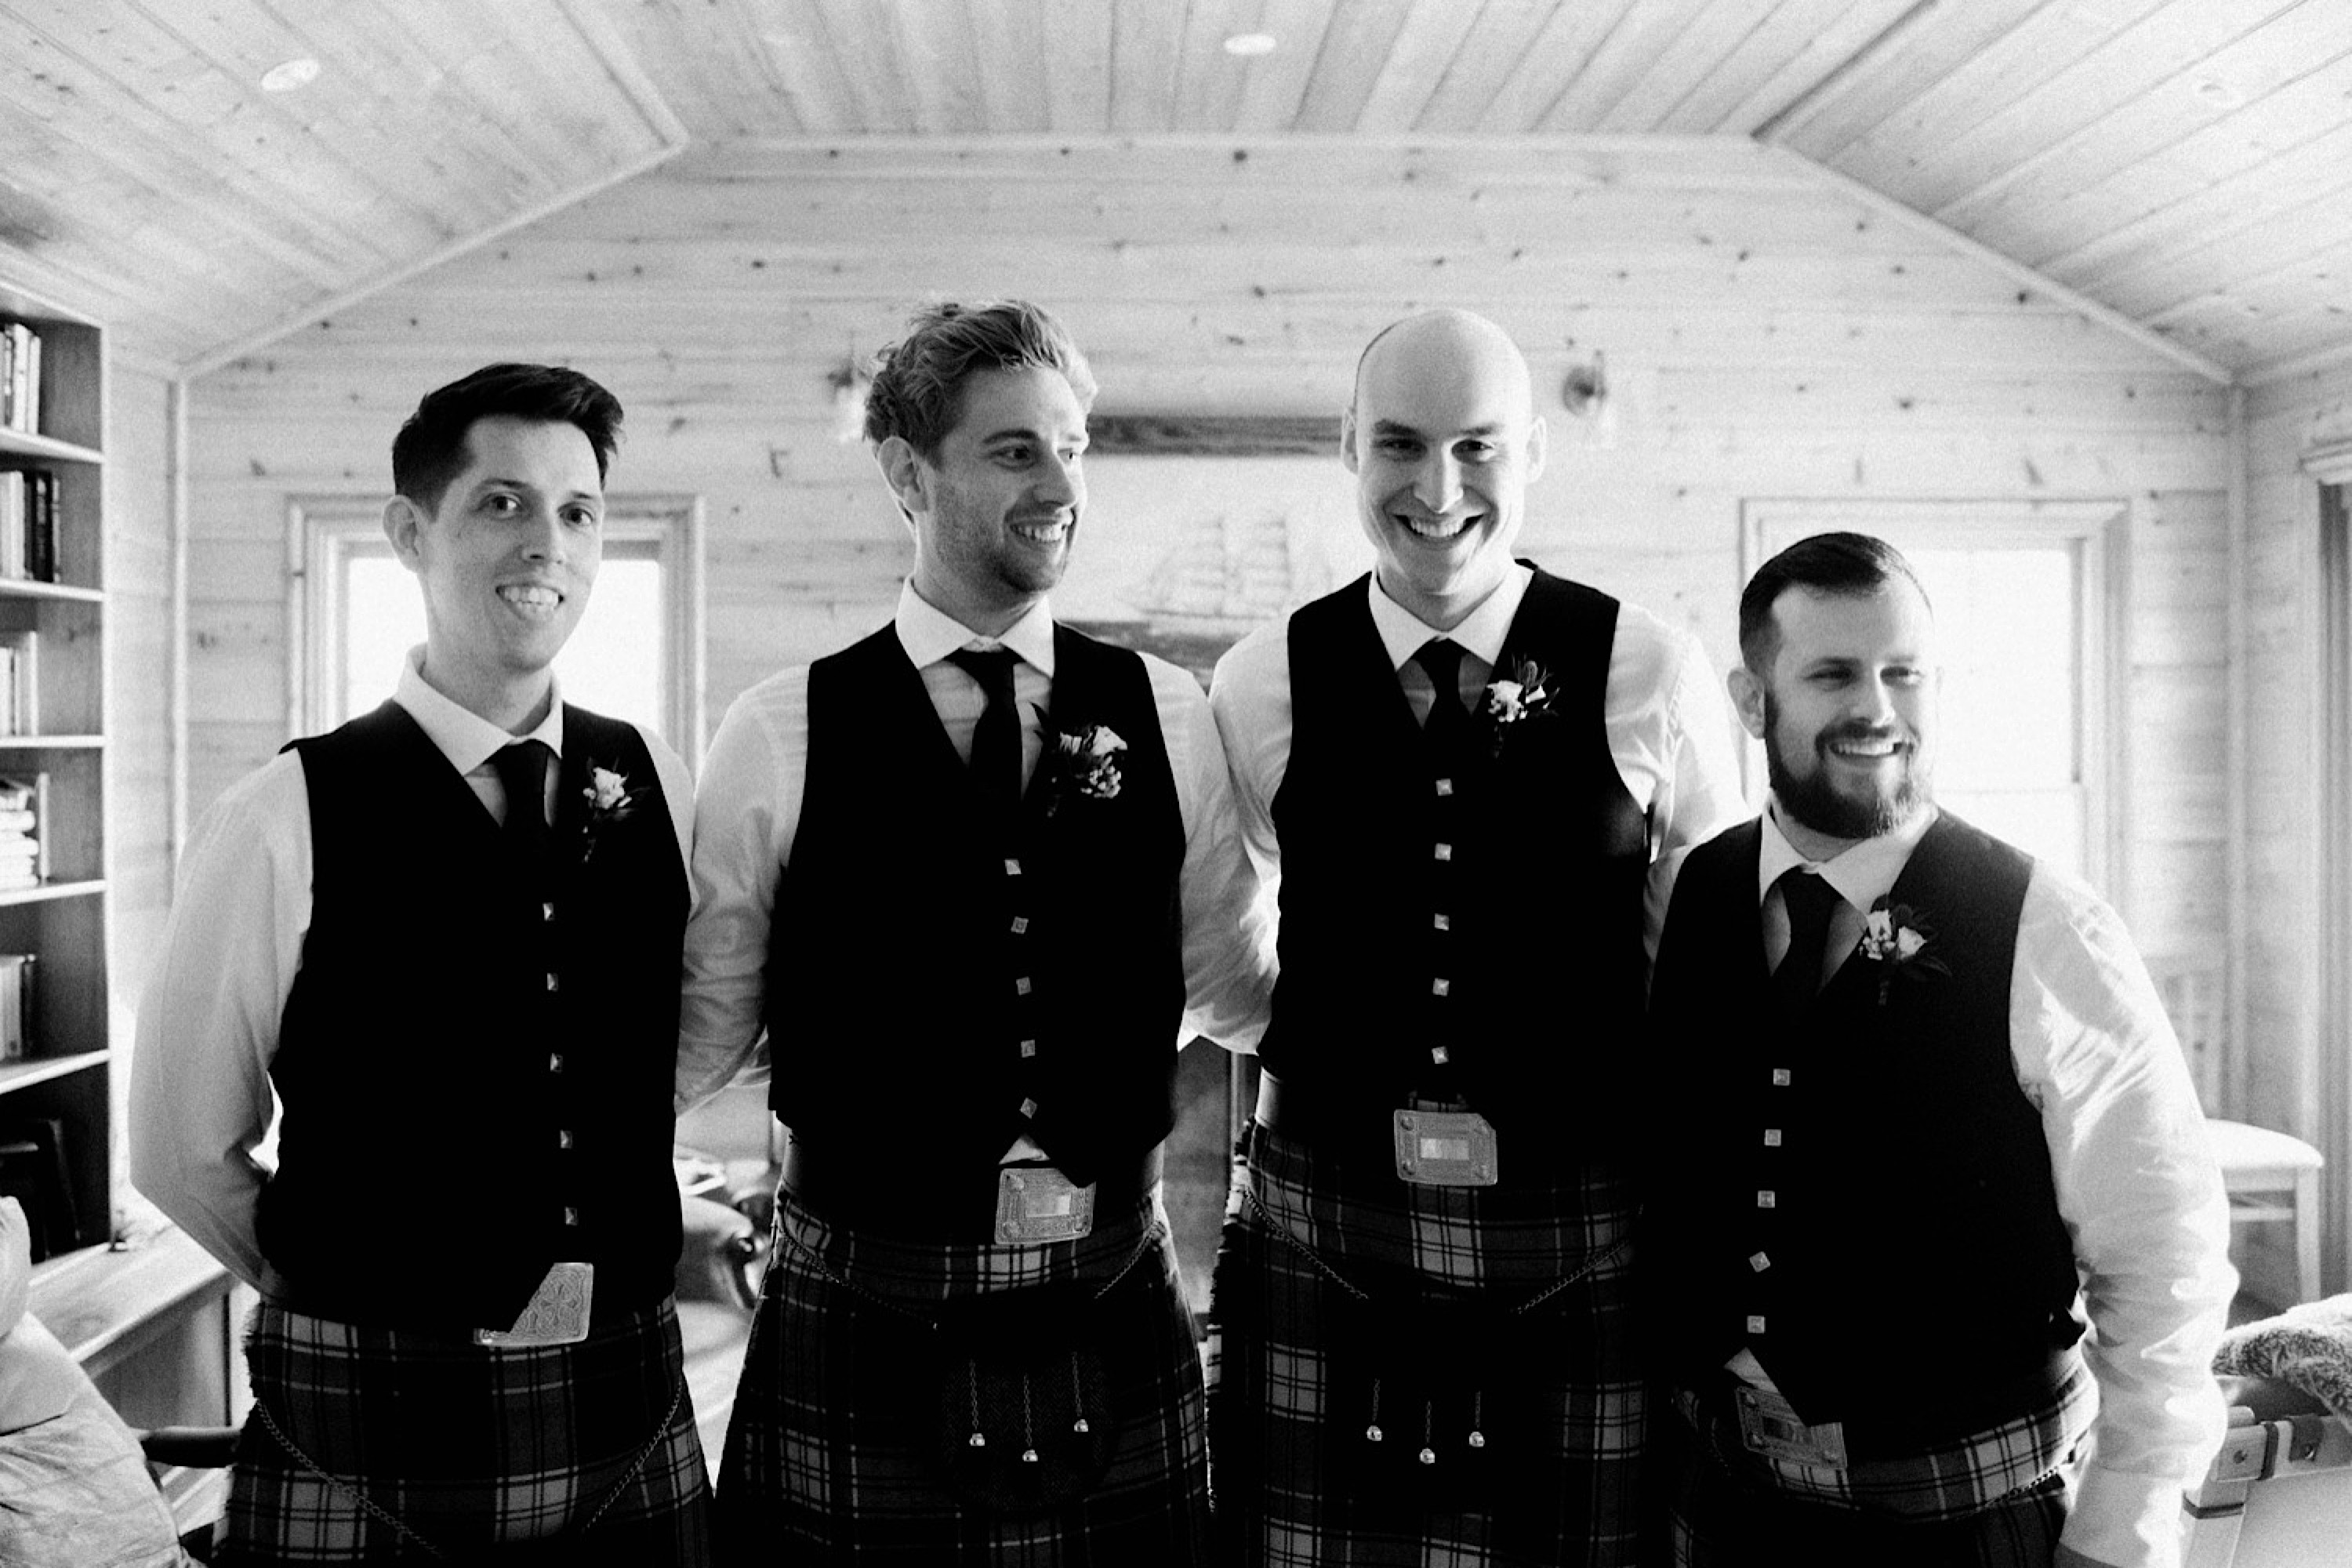 A black & white wedding portrait of the groom and his groomsmen on the morning of his wedding.